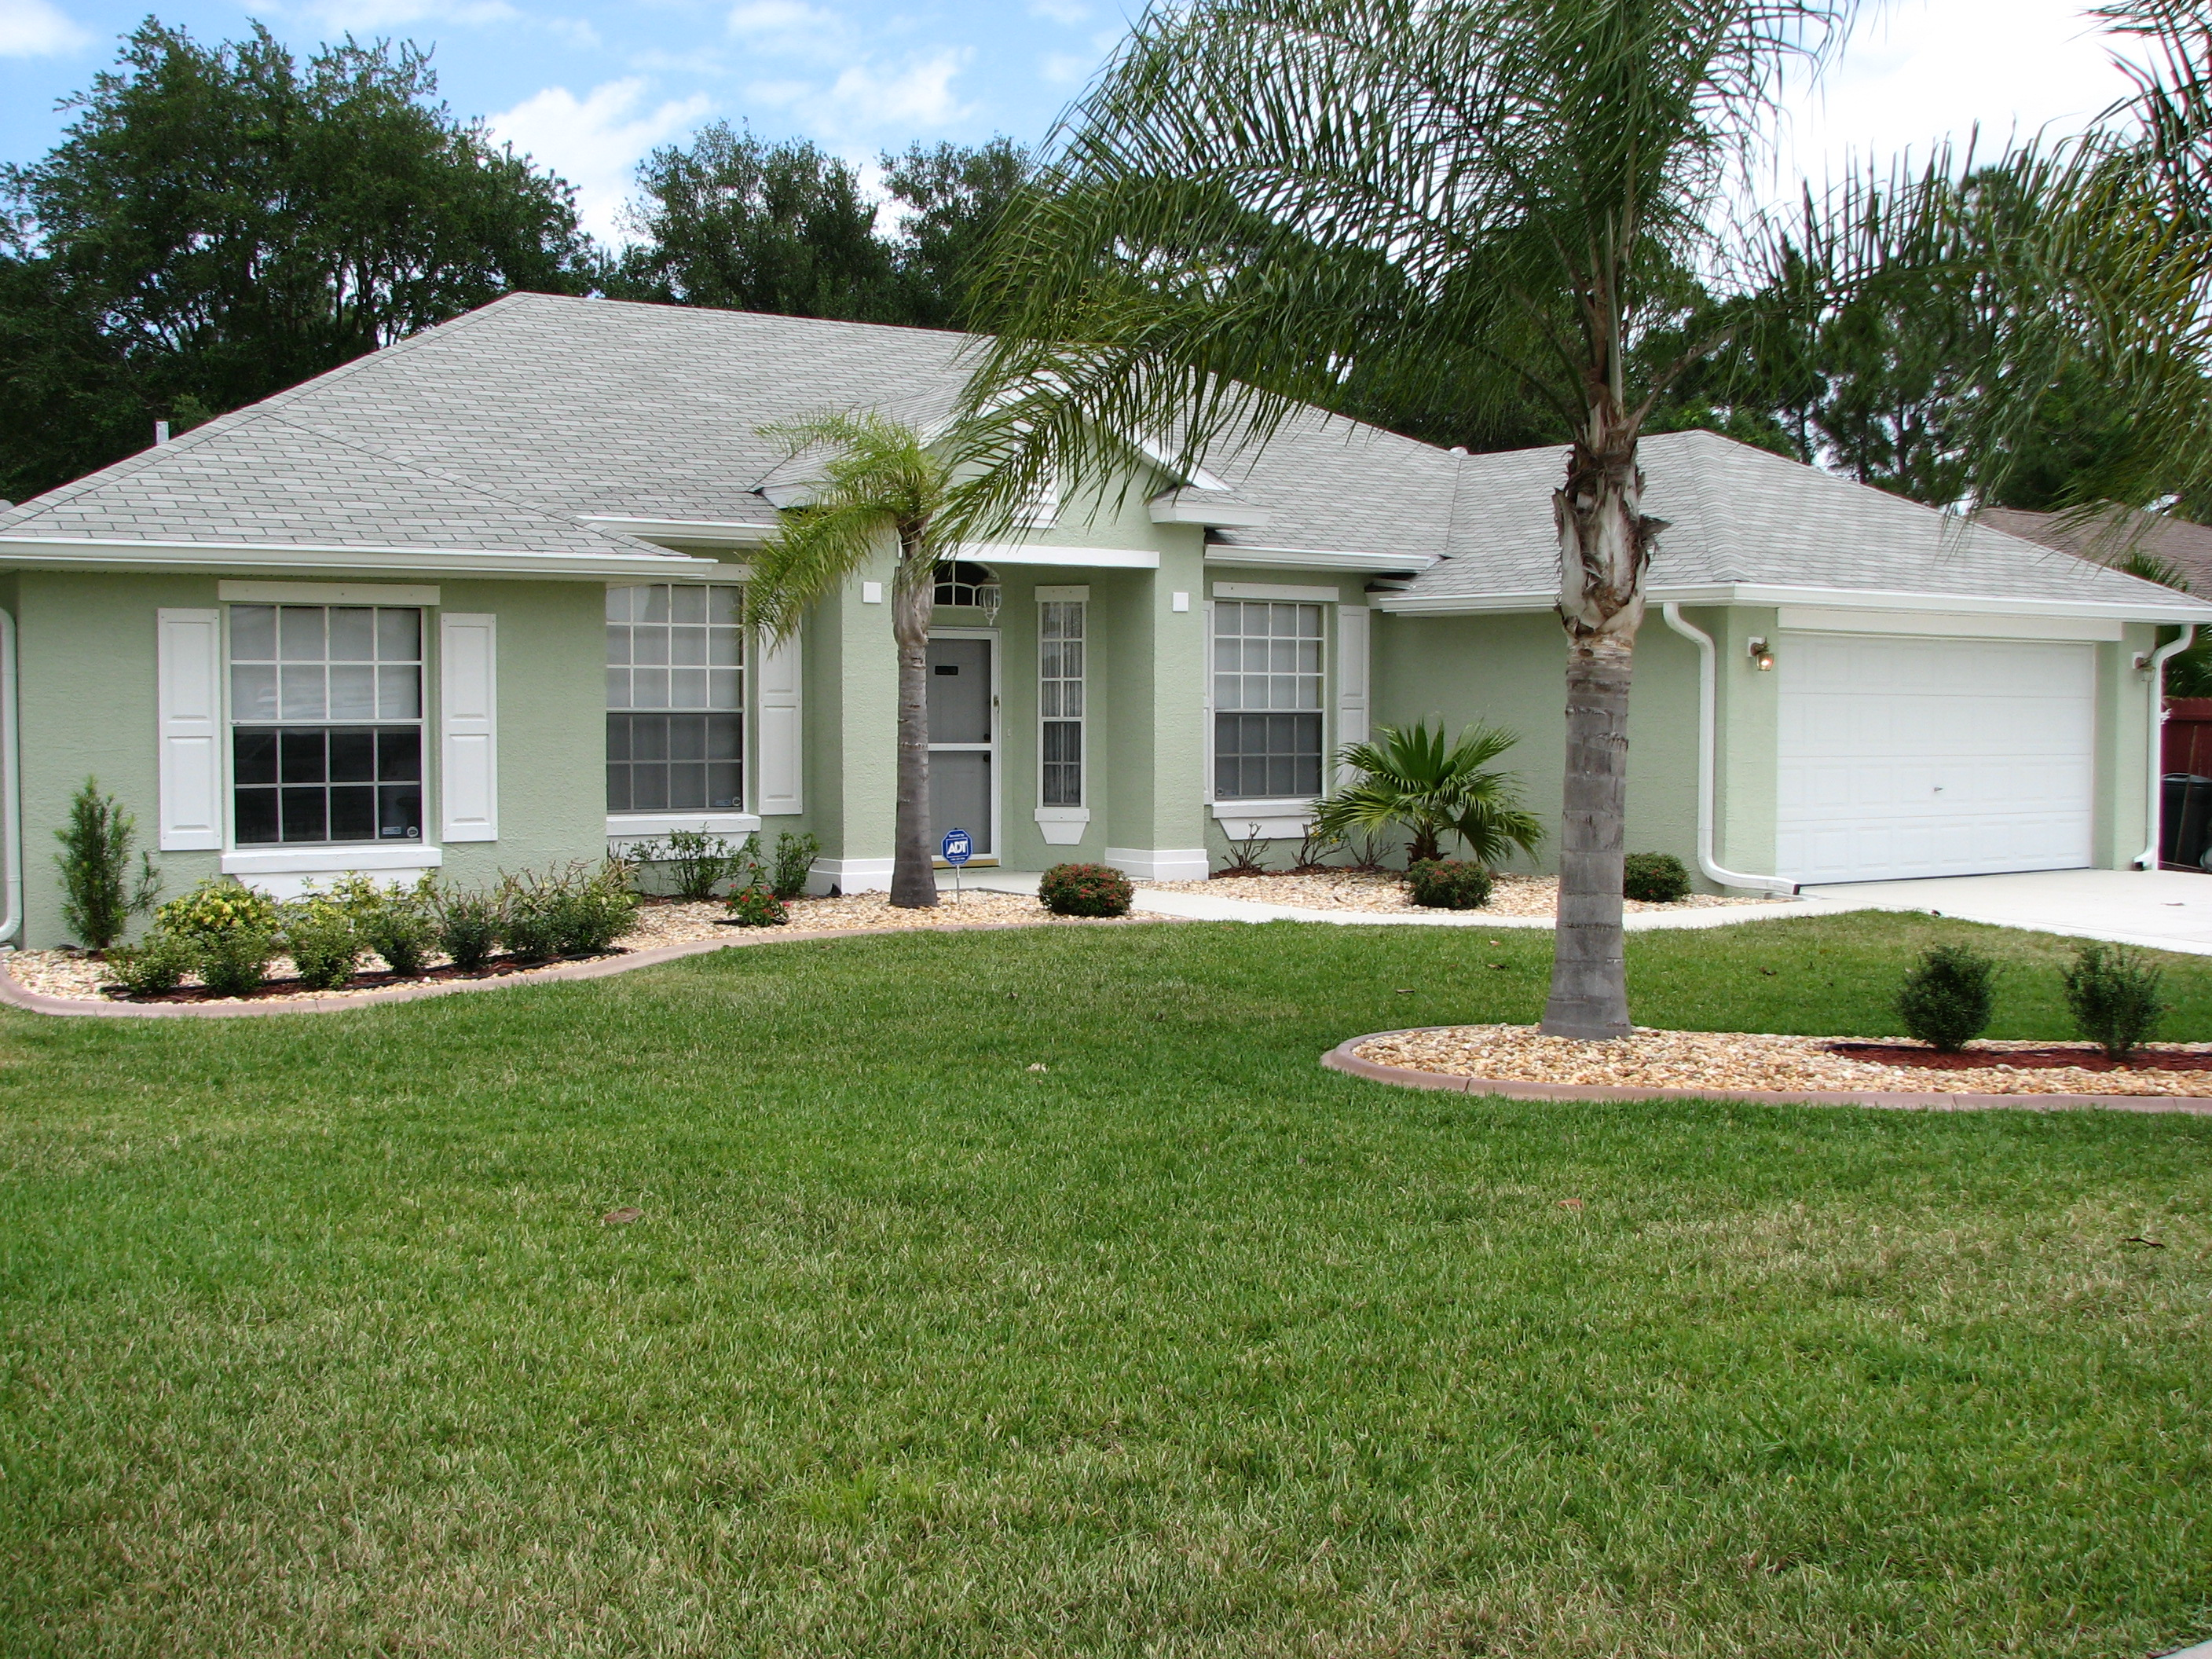 Cocoa fl exterior house painting project by peck painting for Pictures of exterior homes